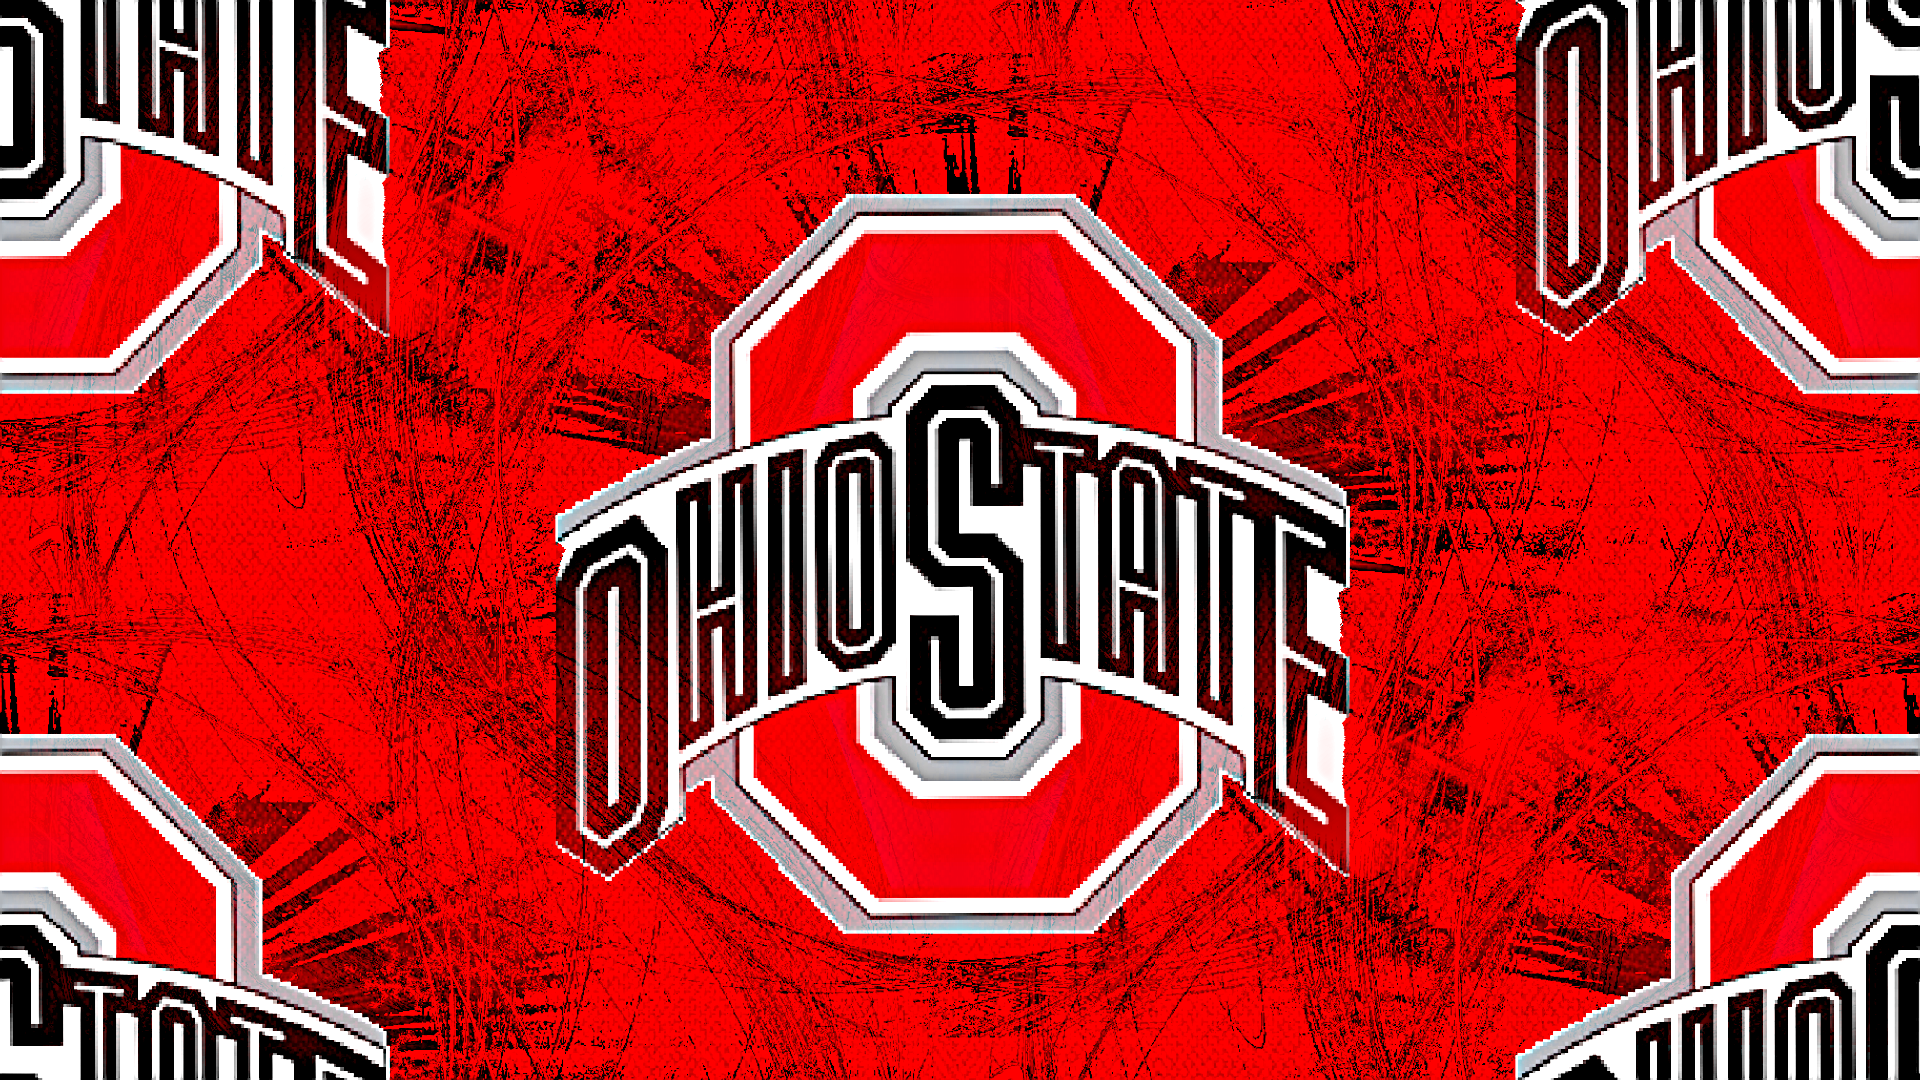 OHIO STATE RED BLOCK O ohio state football 28349006 1920 1080png 1920x1080